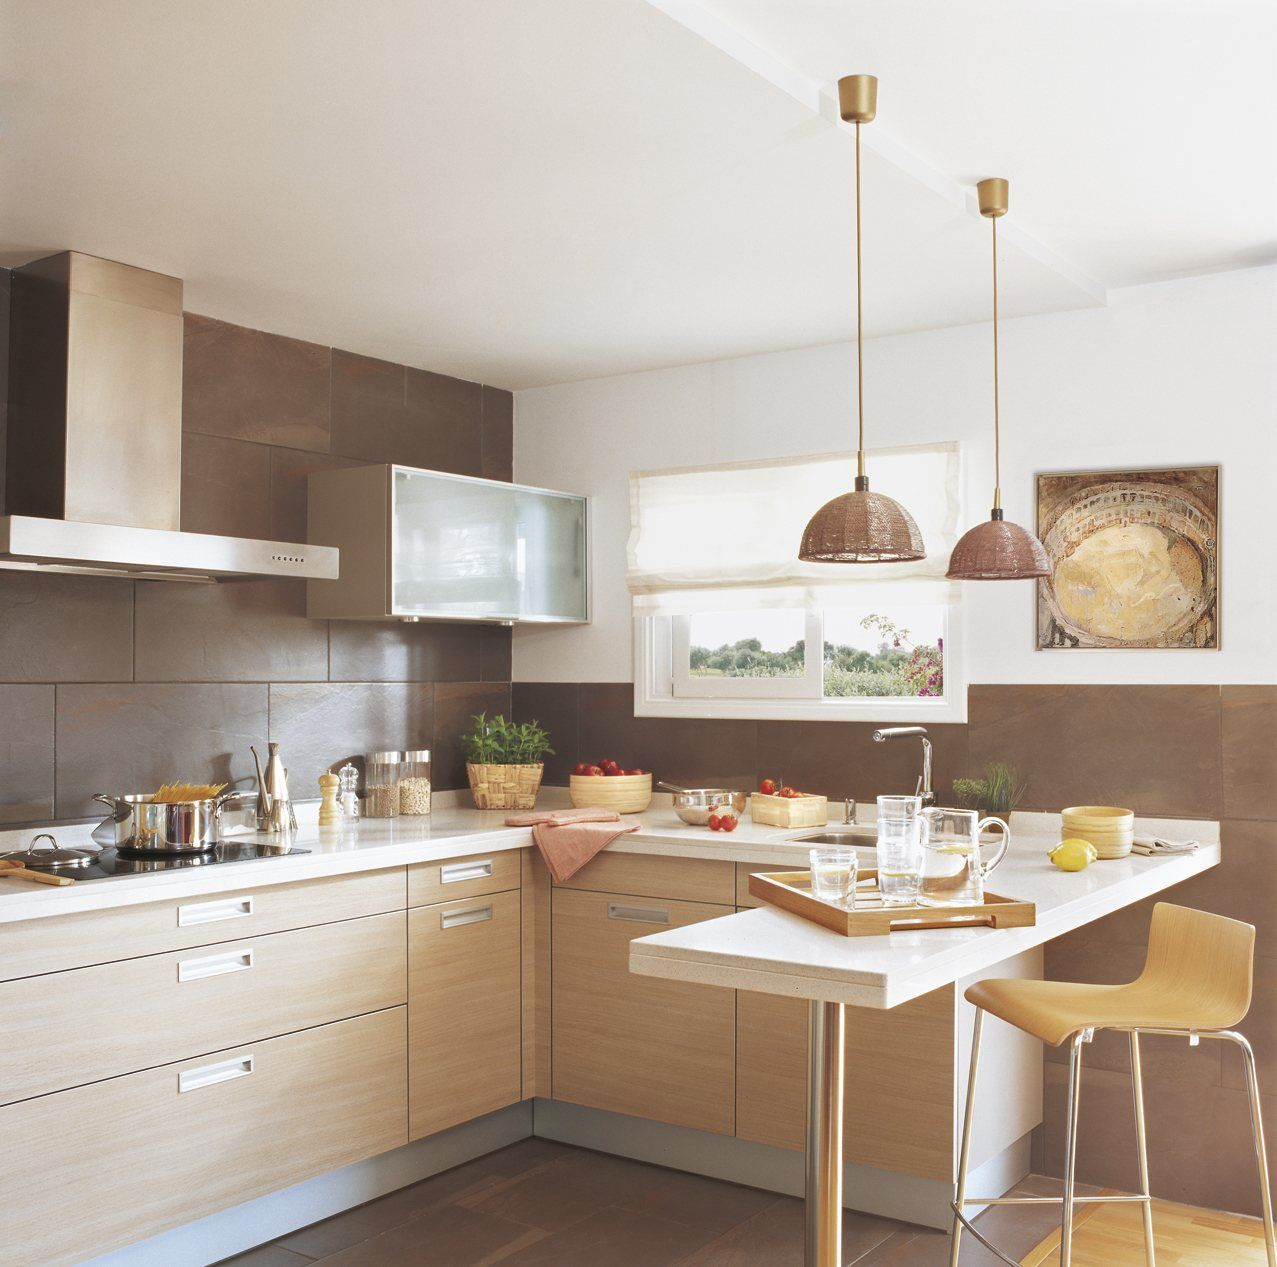 15 cocinas peque as y muy bonitas kitchens ideas para